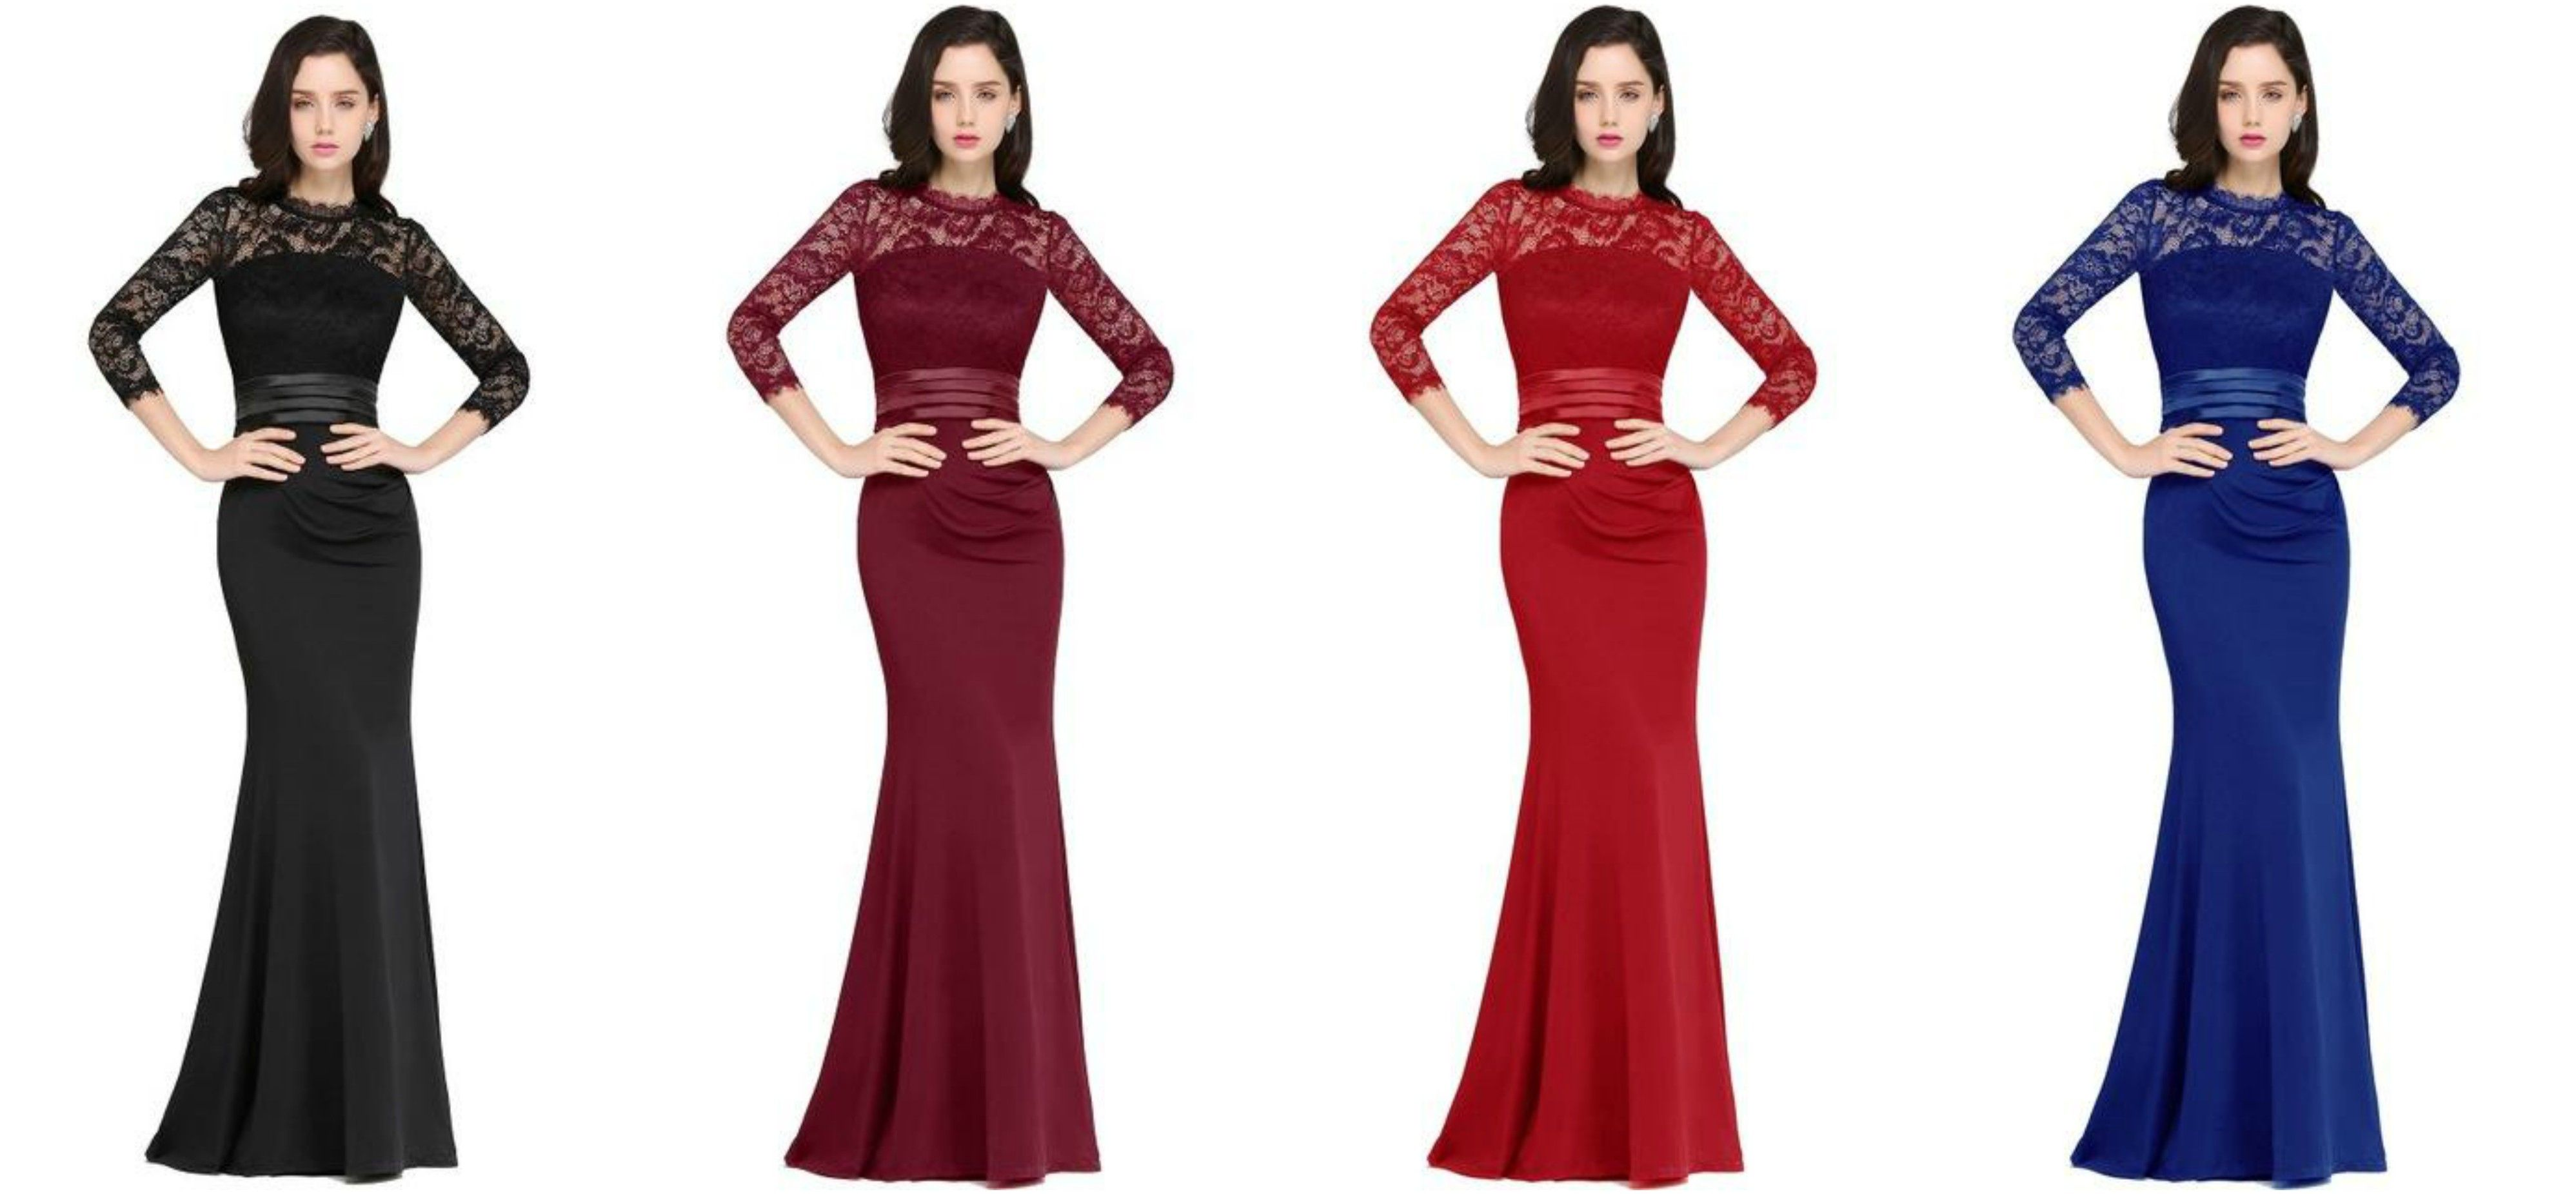 Burgundy mermaid long formal evening dresses long sleeve lace prom